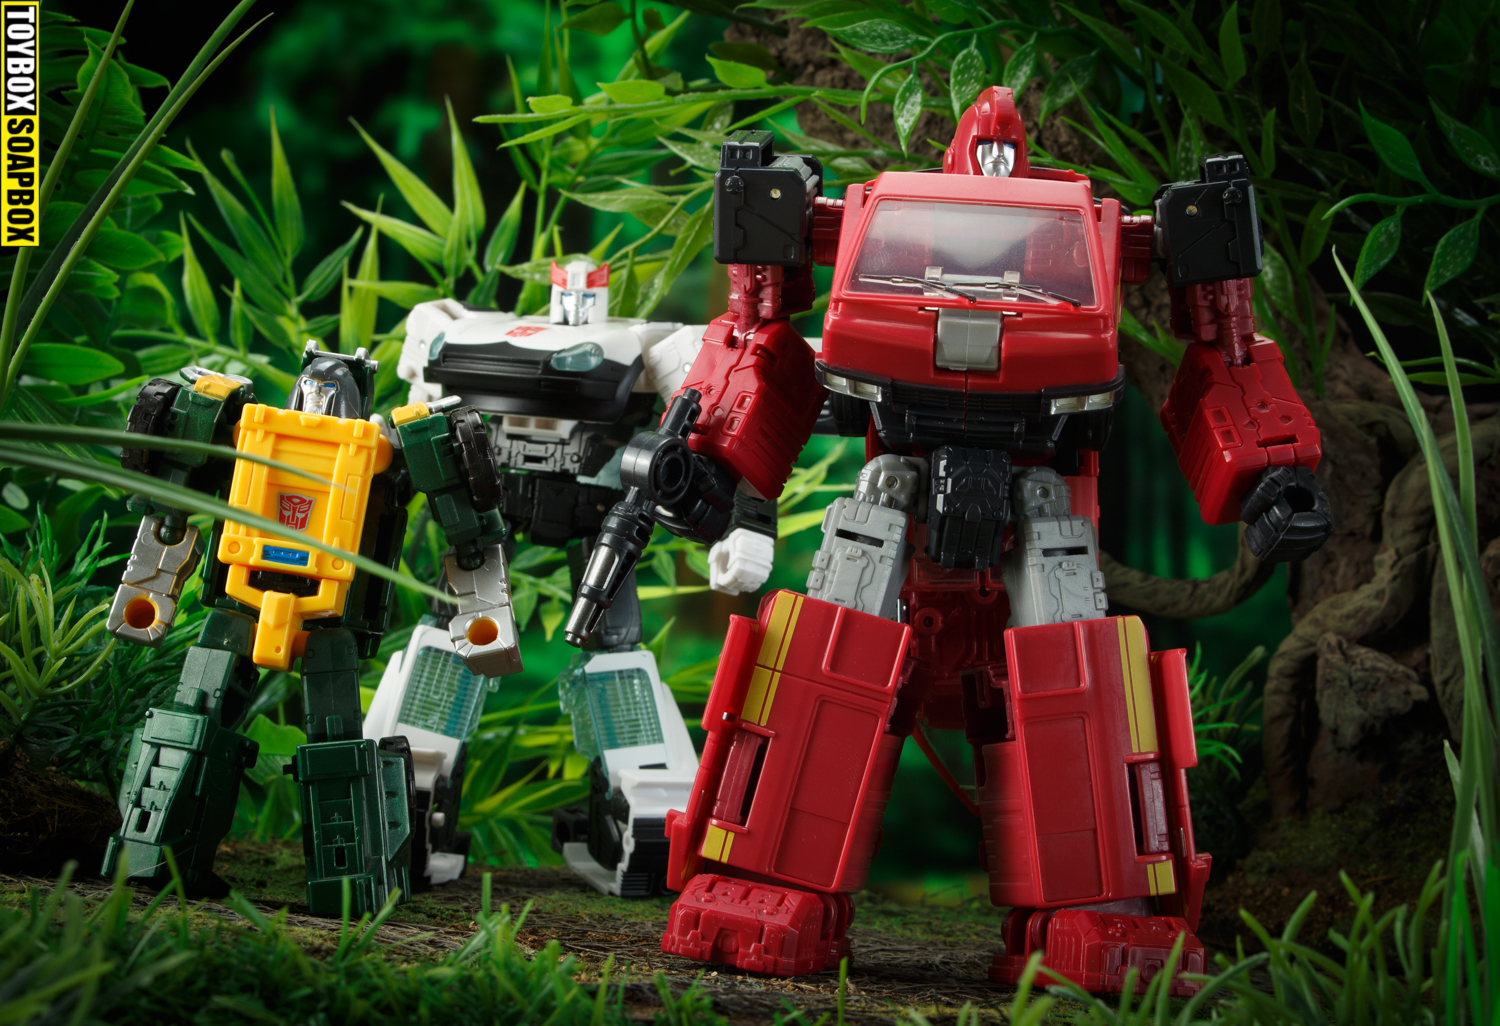 autobot alliance ironhide and prowl plus titans return Brawn